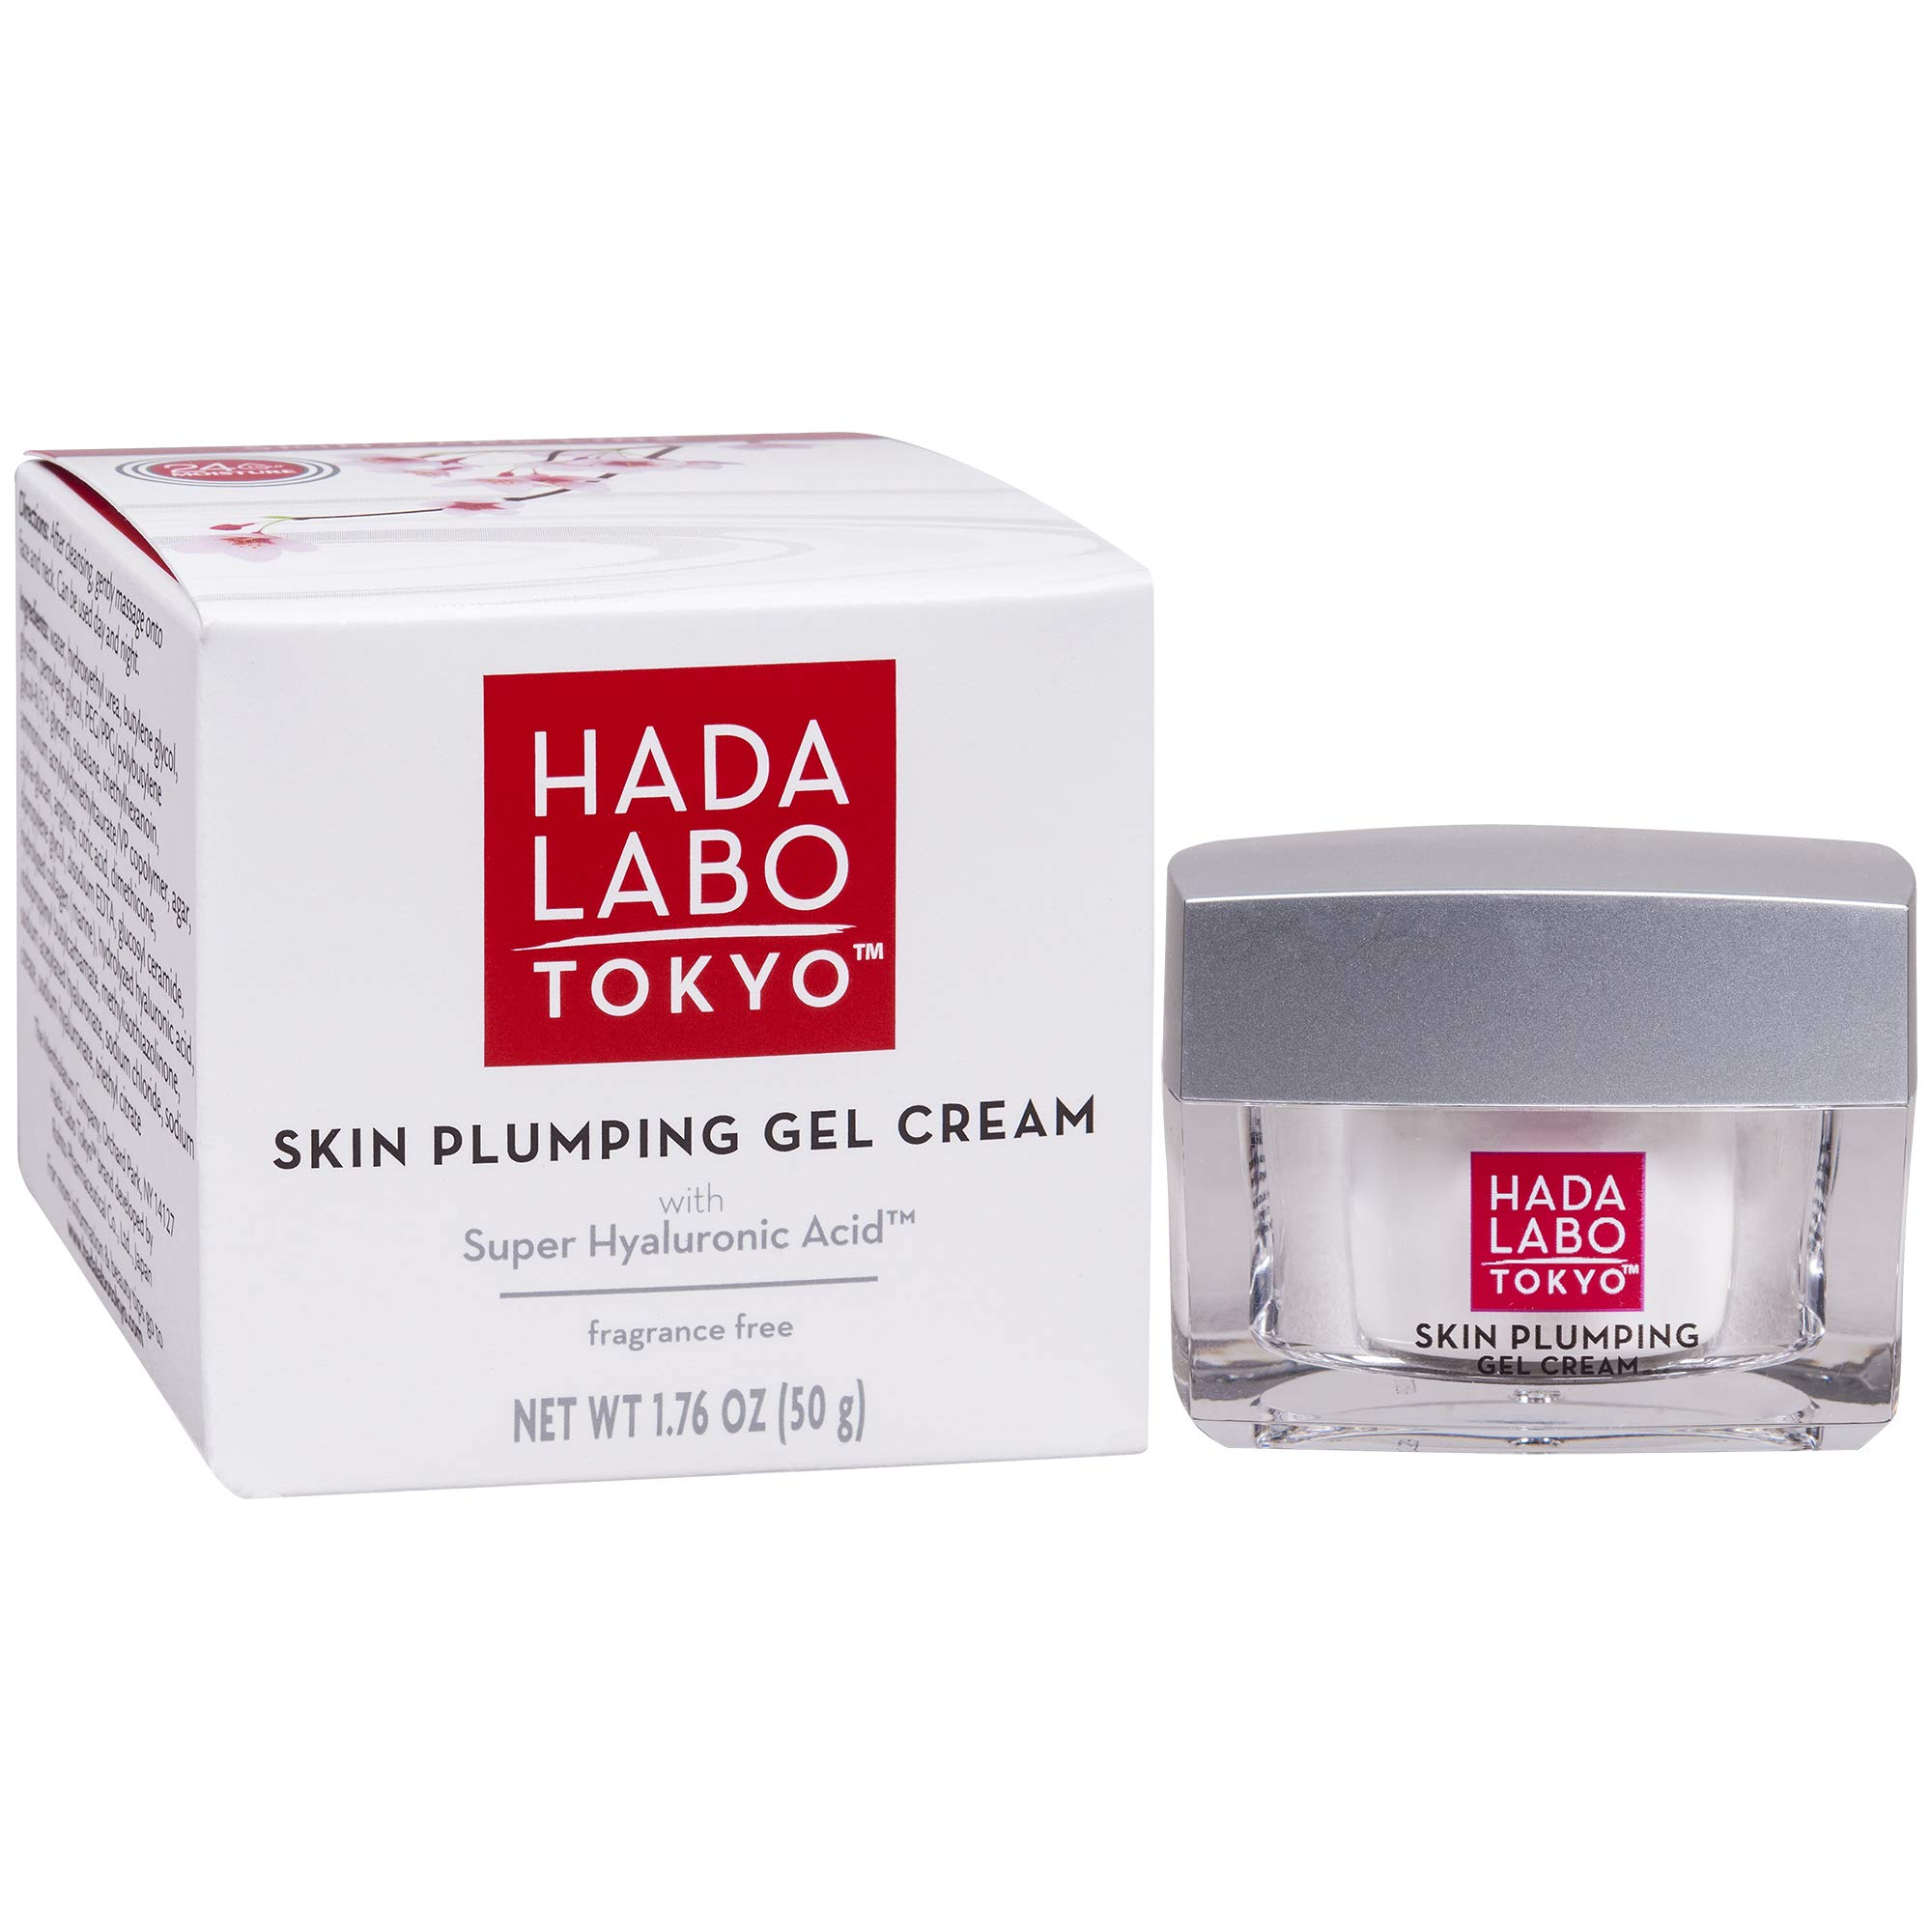 Squalane 100 Pure 2 Oz 60 Ml Beauty Snake Itch Removing Pil Hada Labo Tokyo Skin Plumping Gel Cream 176 Fl With Super Hyaluronic Acid And